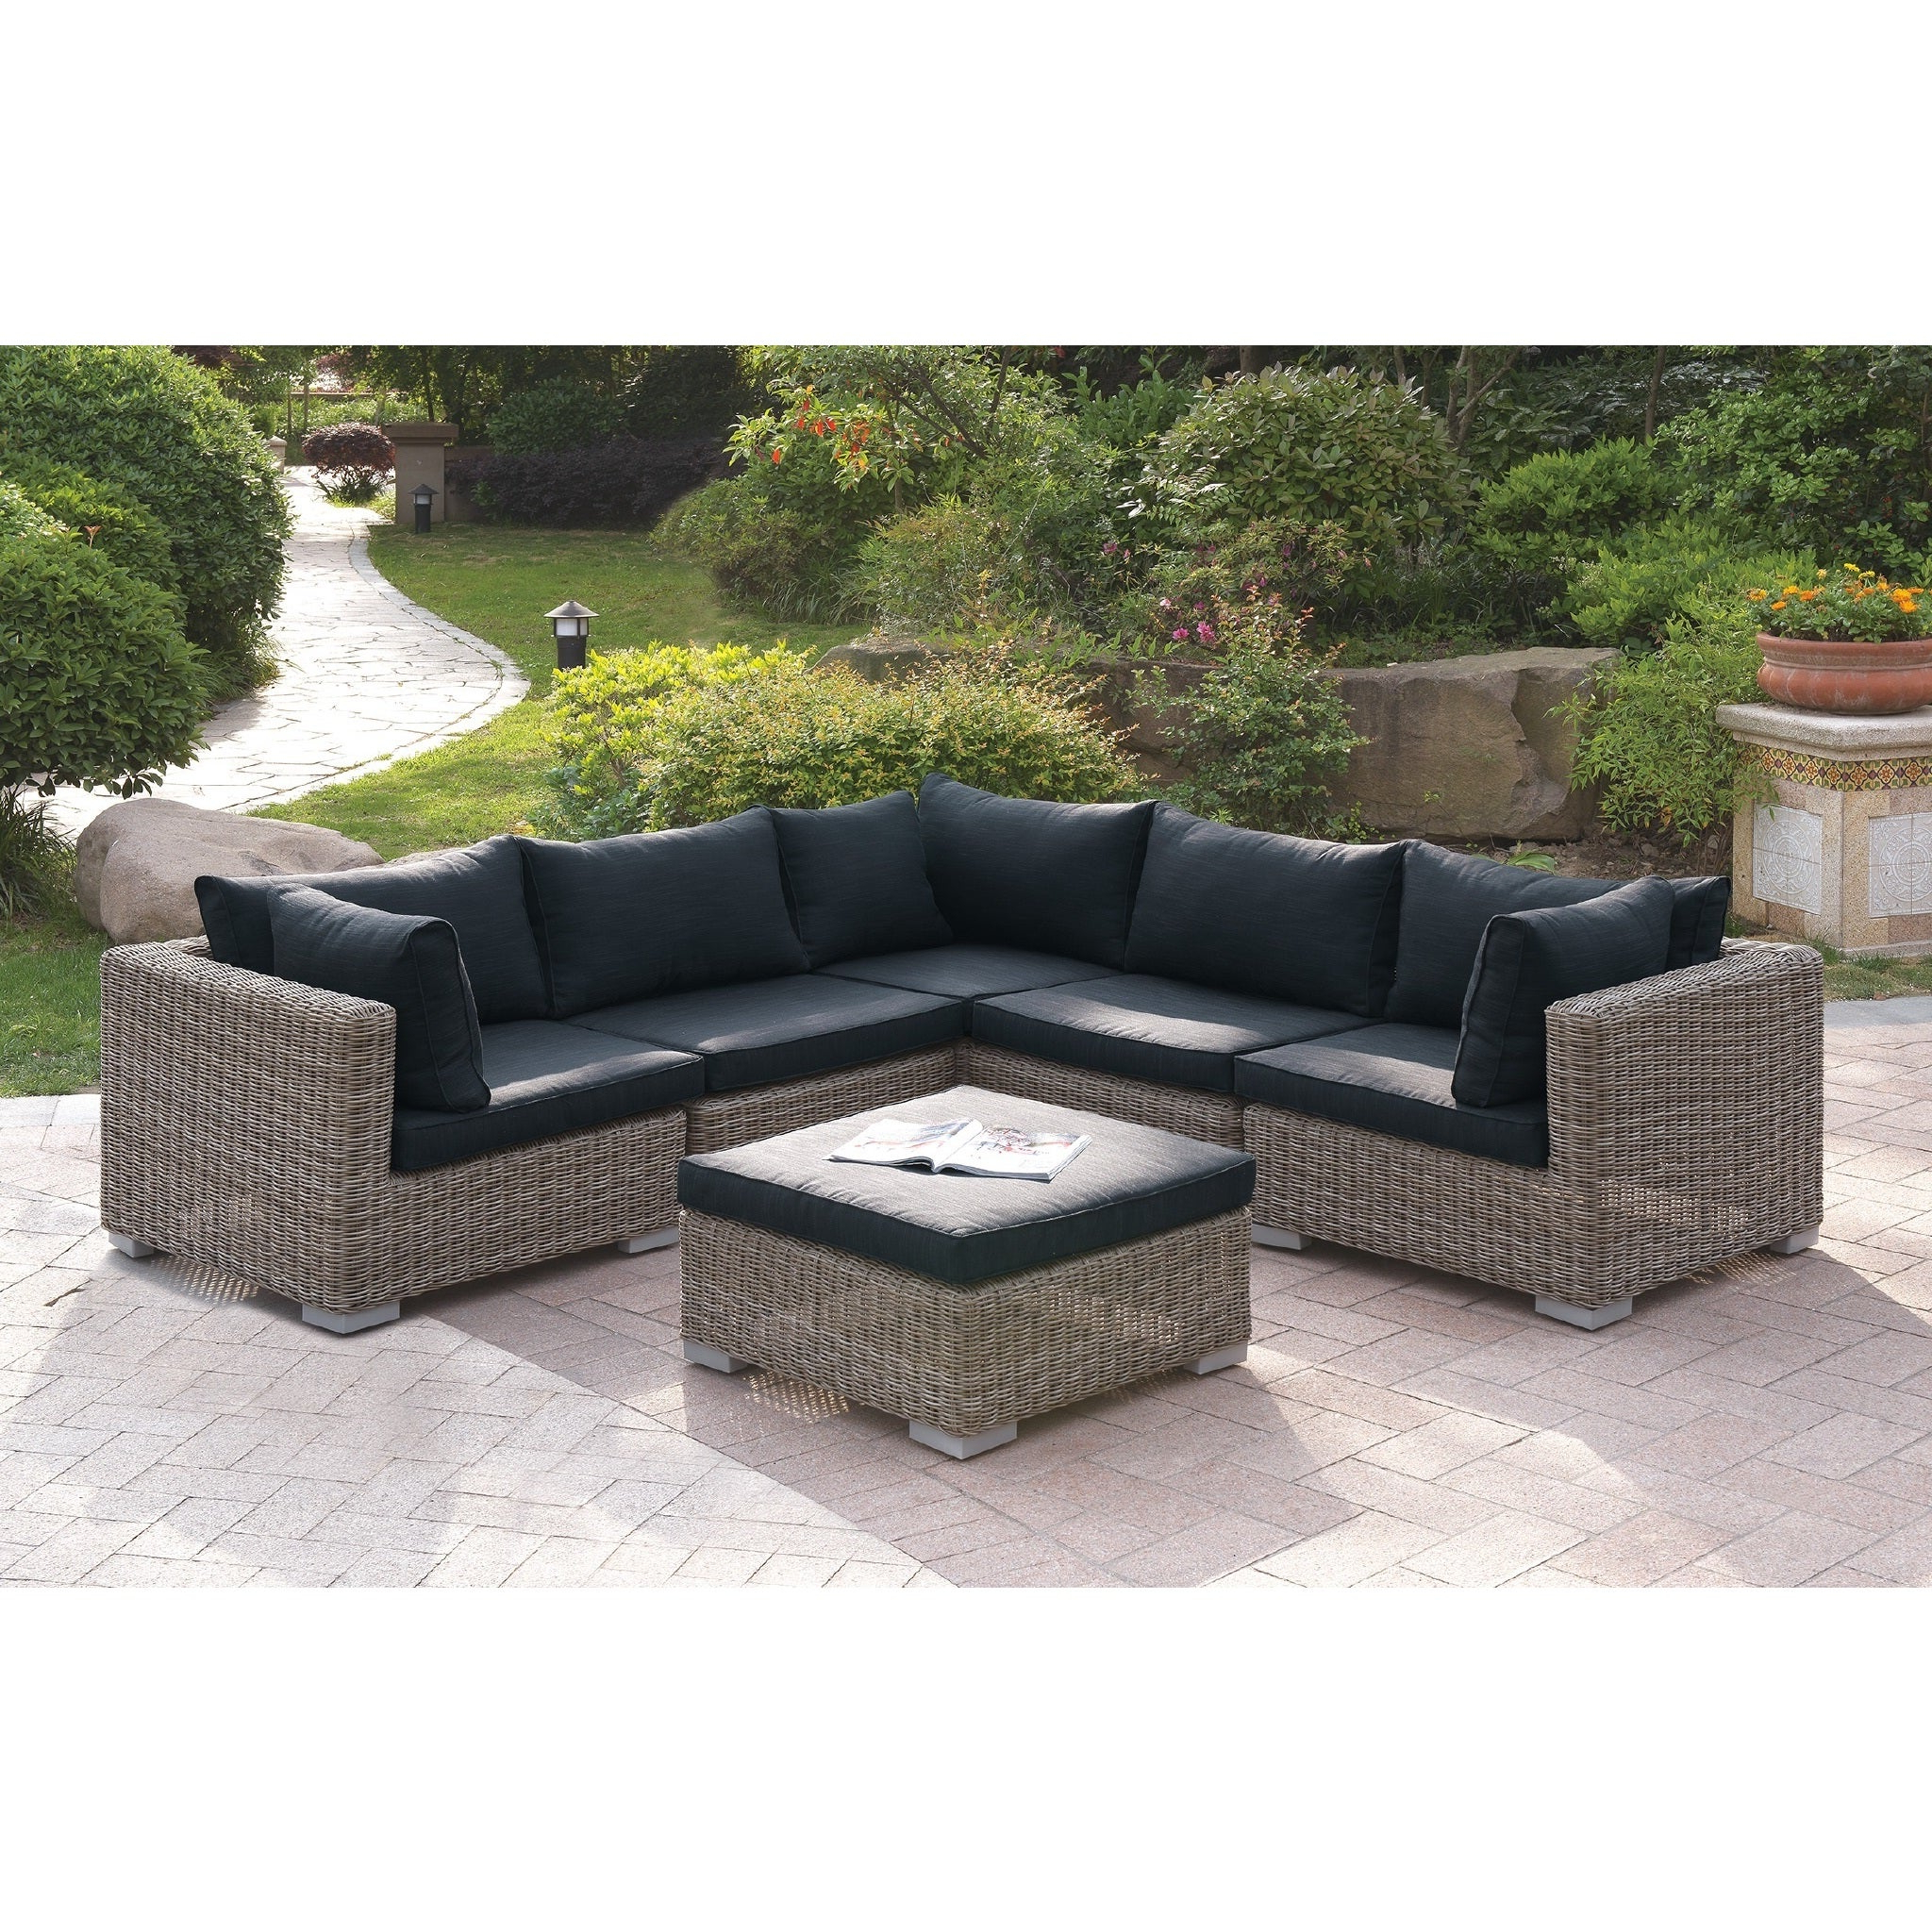 Current Tess Corner Living Patio Sectionals With Cushions Intended For Harvey 6 Piece Patio Sectional Set Ii With Cushions (View 4 of 20)